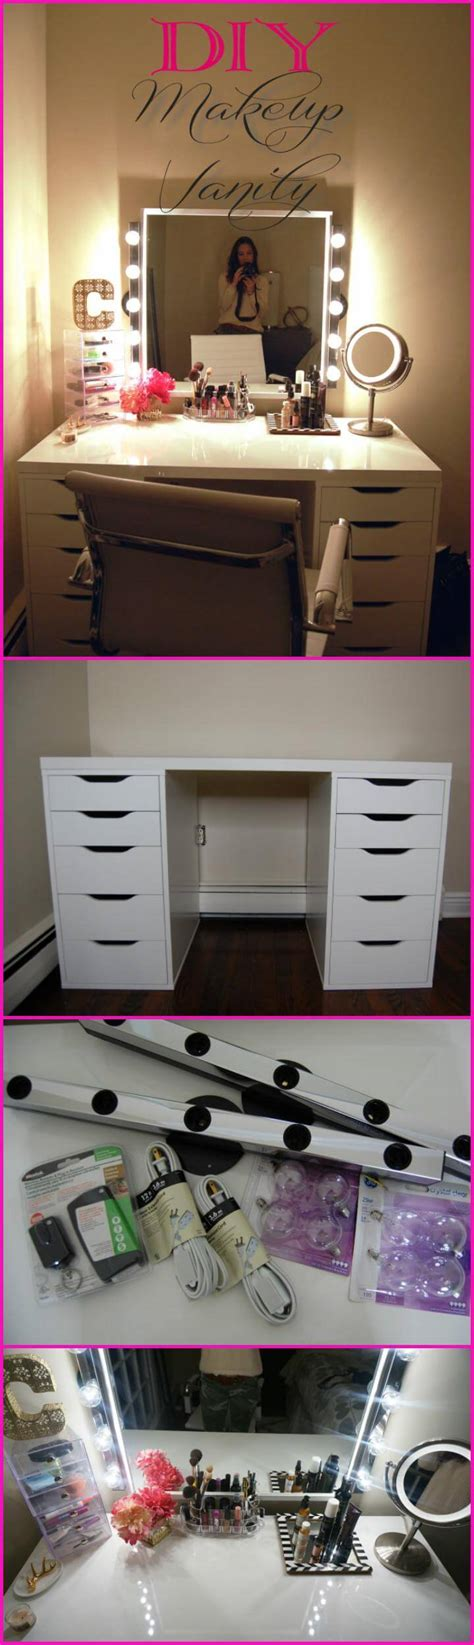 diy makeup vanity table 20 diy makeup vanity tutorials diy your own makeup